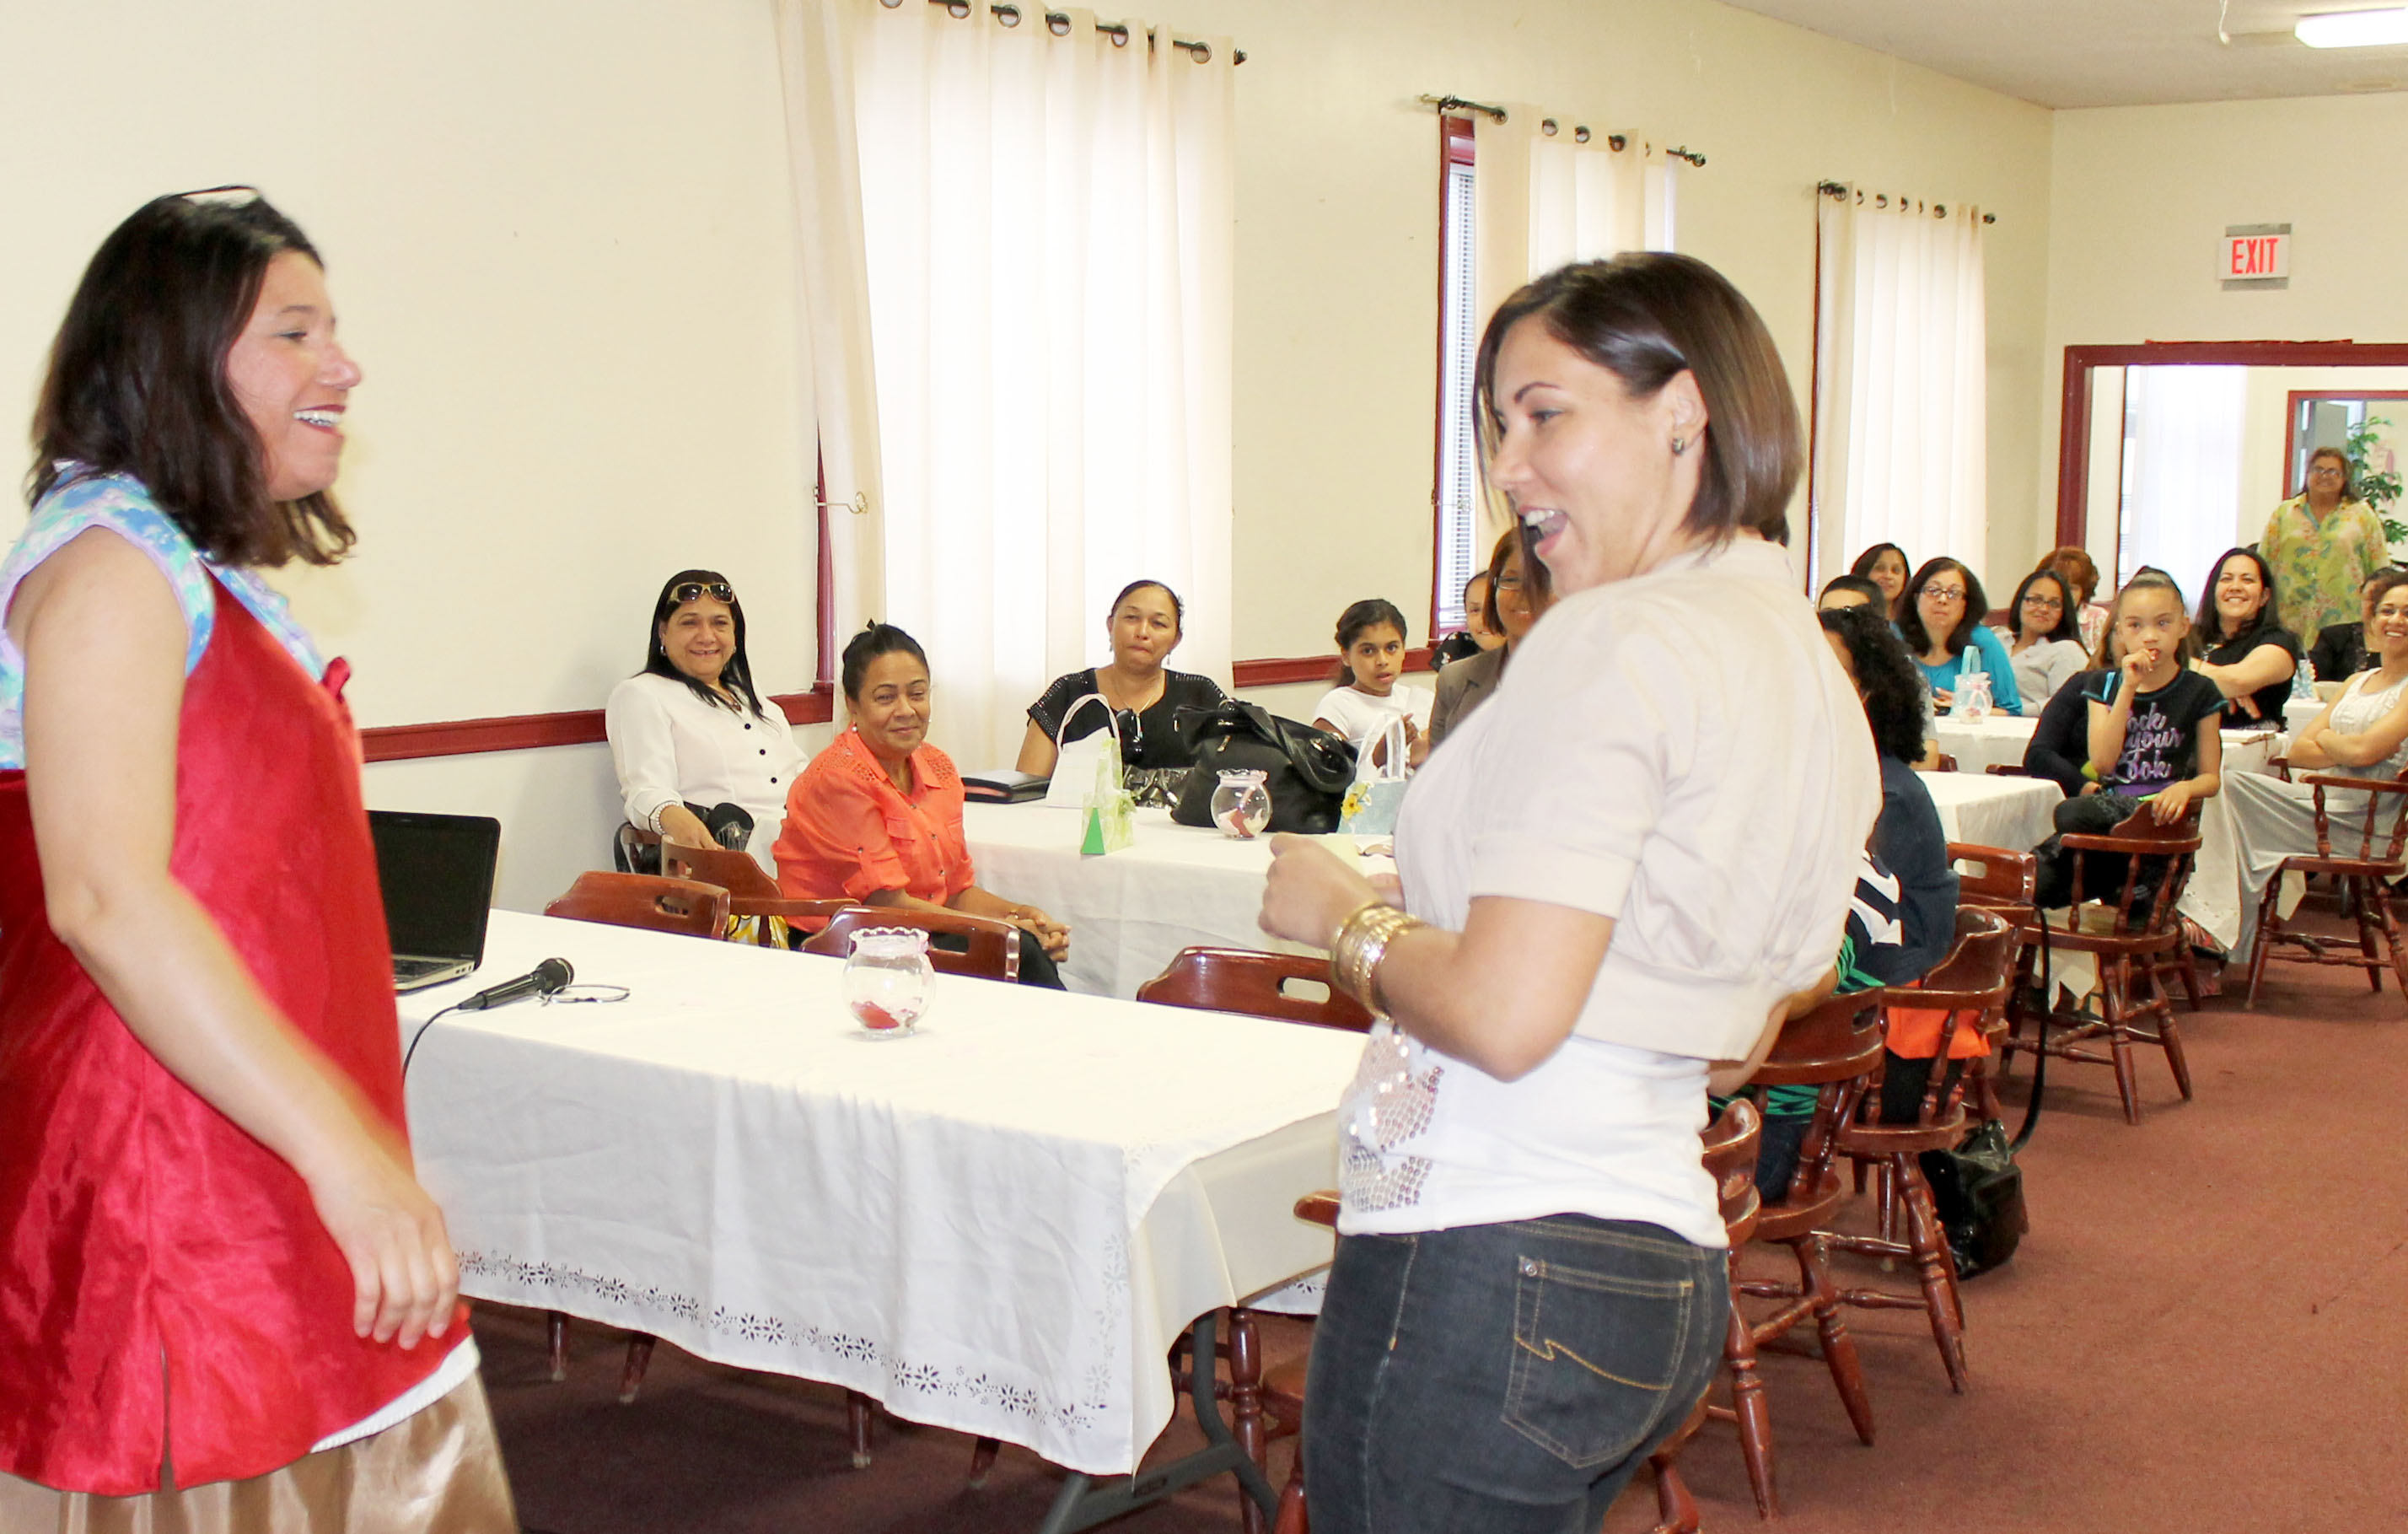 Conferencia Reobrando Tu Identidad, Bridgeport, CT 2014